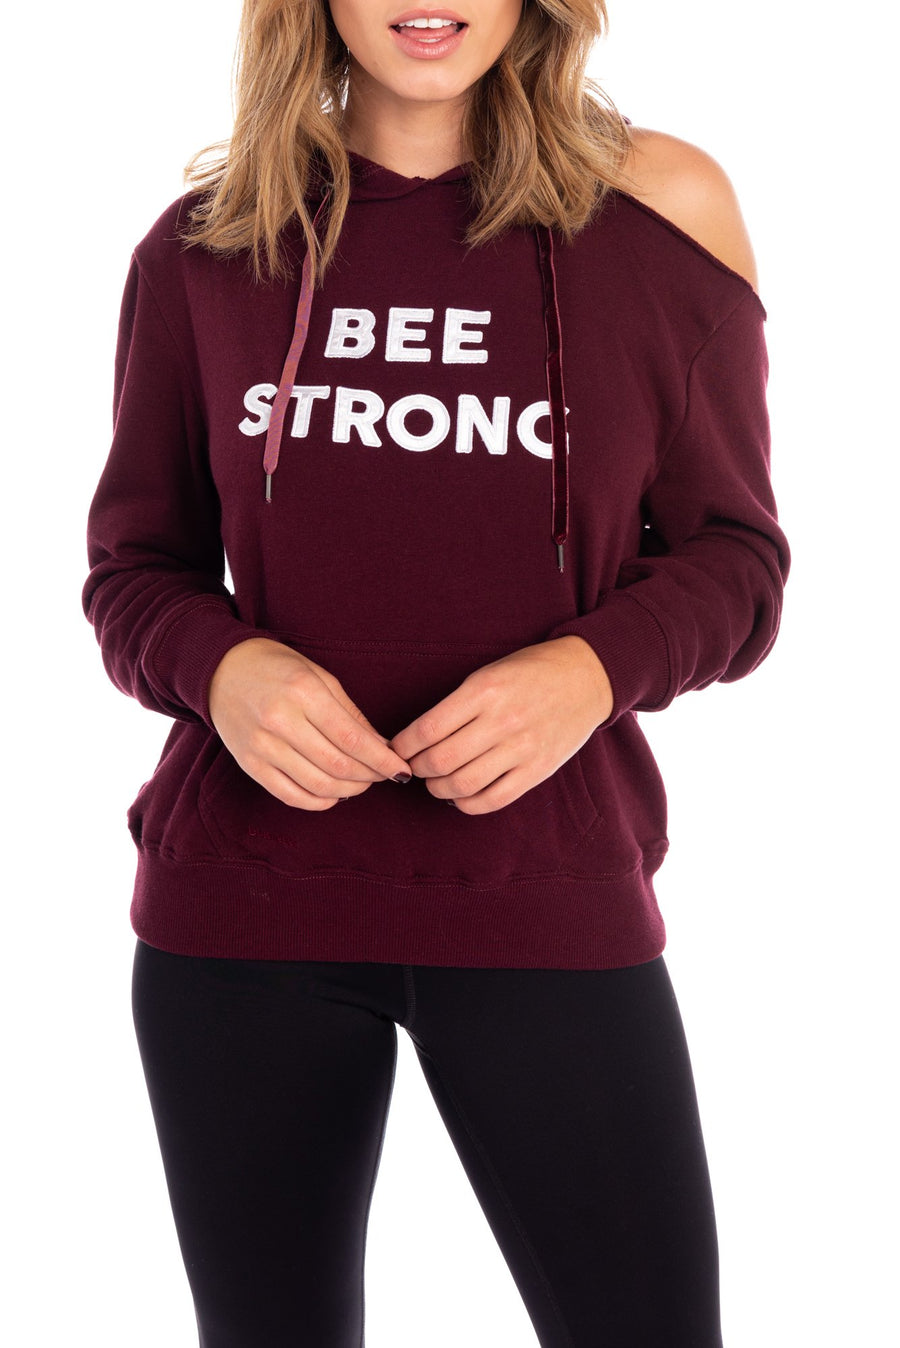 bee strong pullover hoodie, wine colored sweatshirt, graphic sweatshirt, cold shoulder cut out, bella twins clothing line birdiebee, sweat outfit, nikki bella, brie bella, athleisure, workout outfit